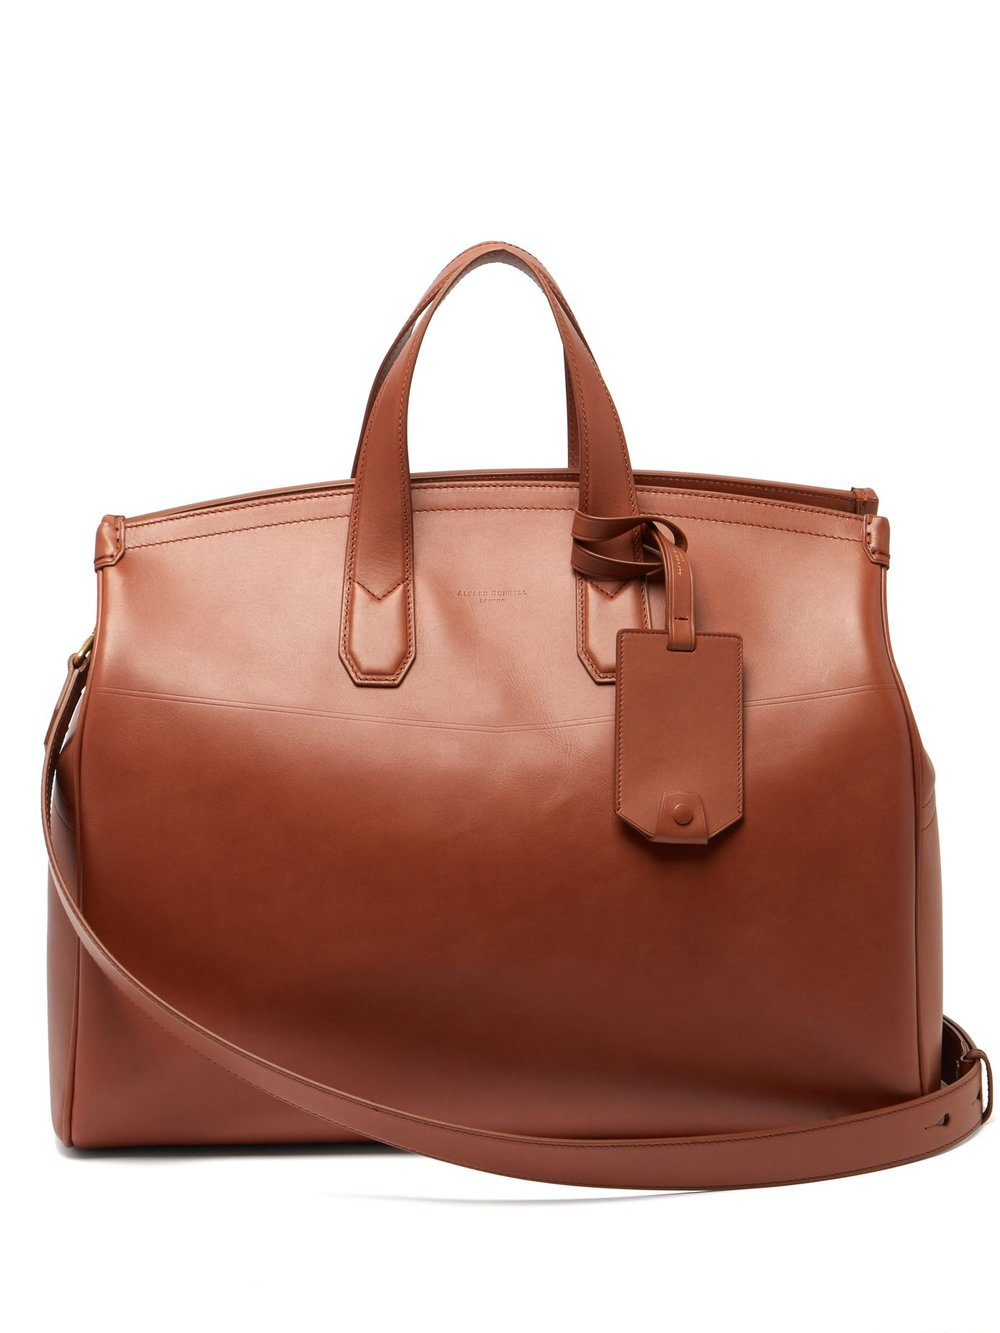 DUNHILL - every man needs a smart leather holdall. this one-bag-fits all by Dunhill works for travel, gym, or to and from the office.